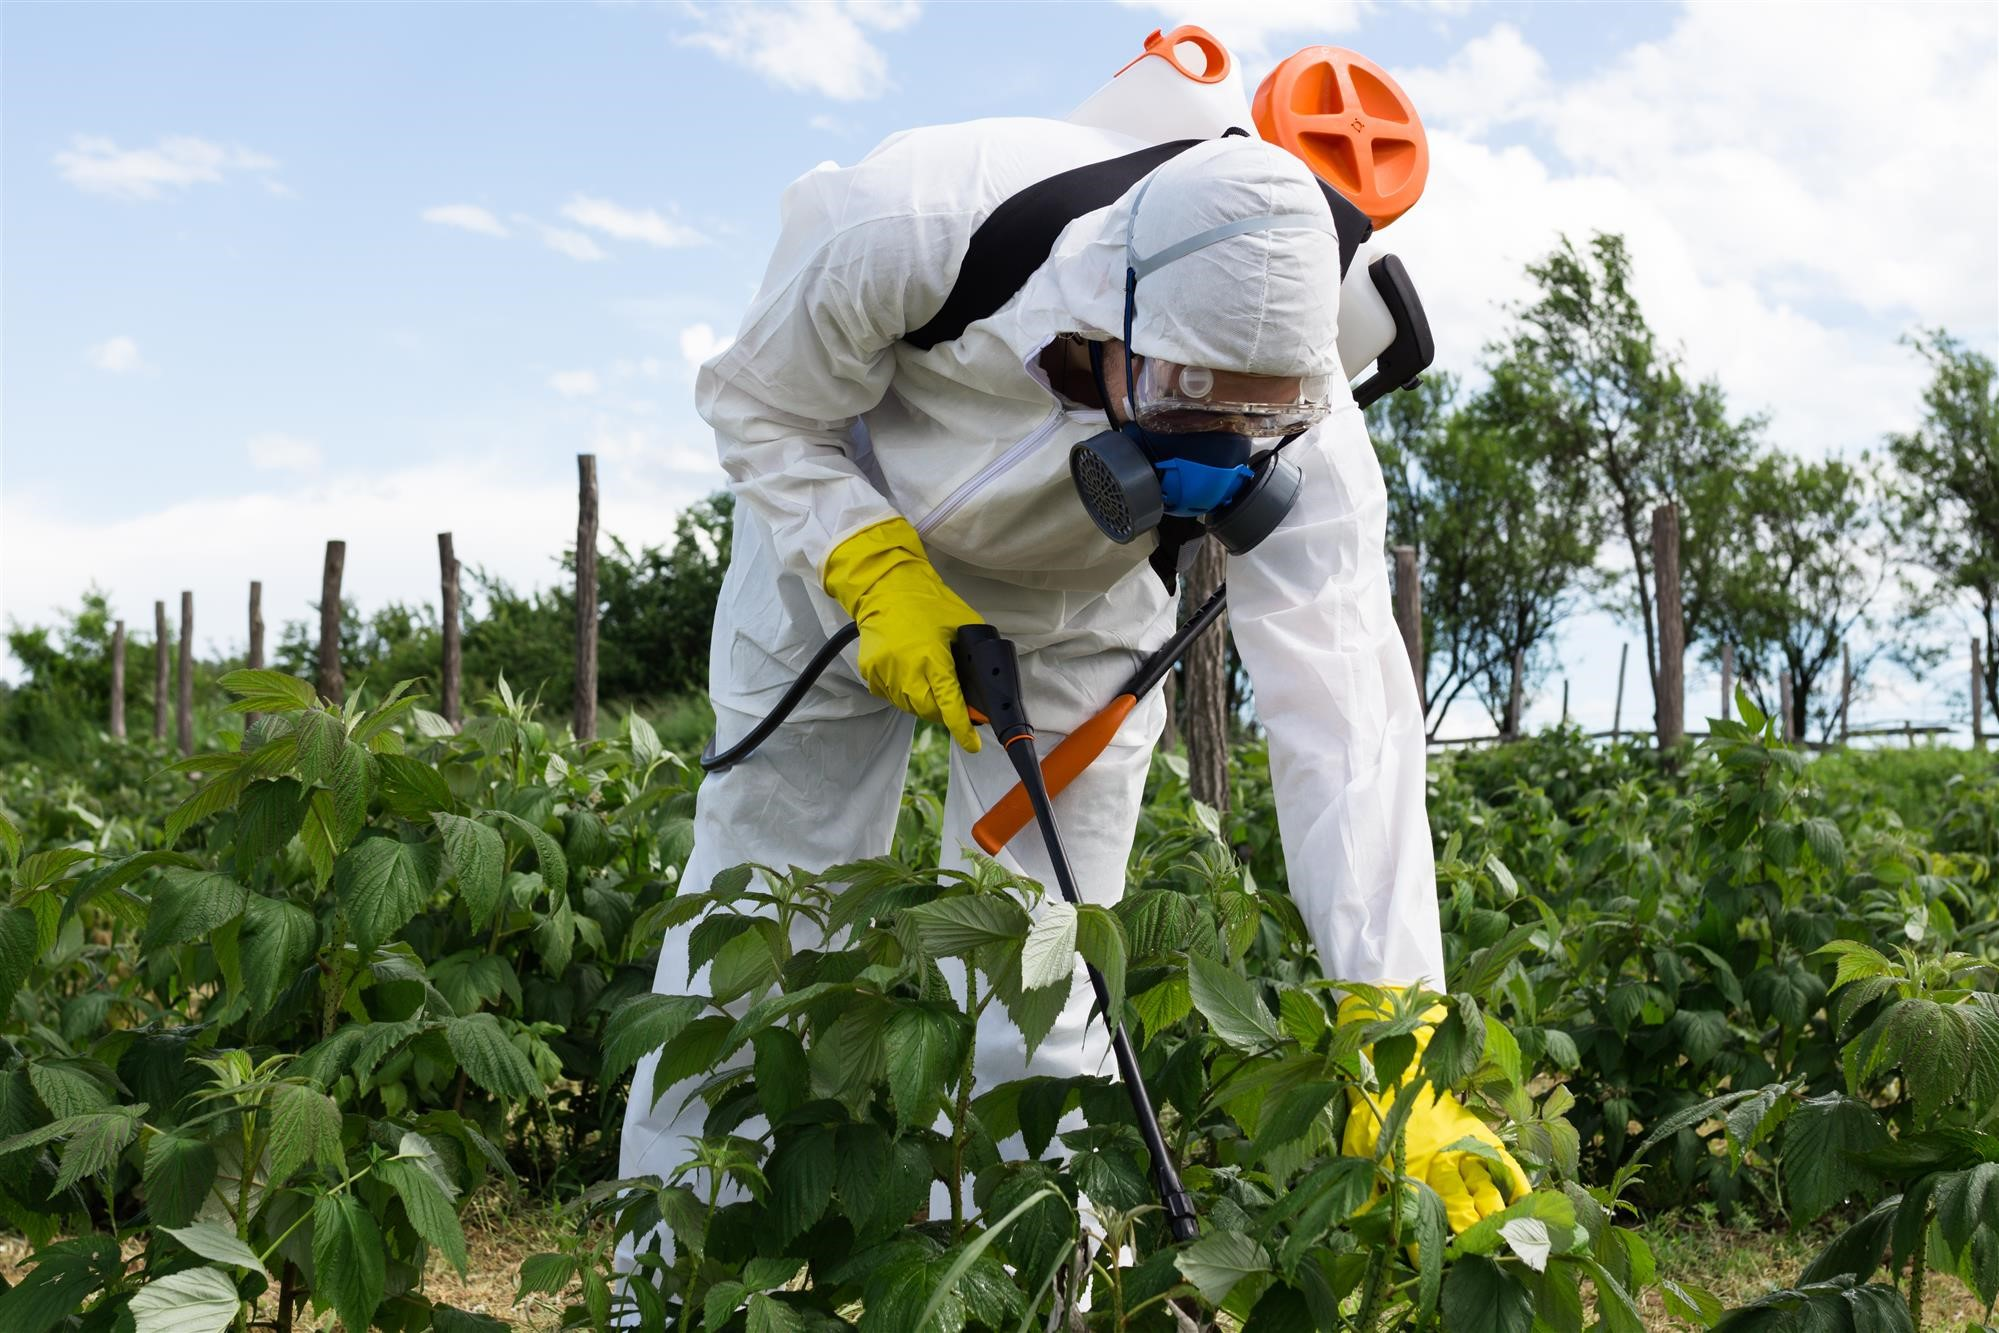 Product Liability Lawsuit Against Roundup Weed Killer